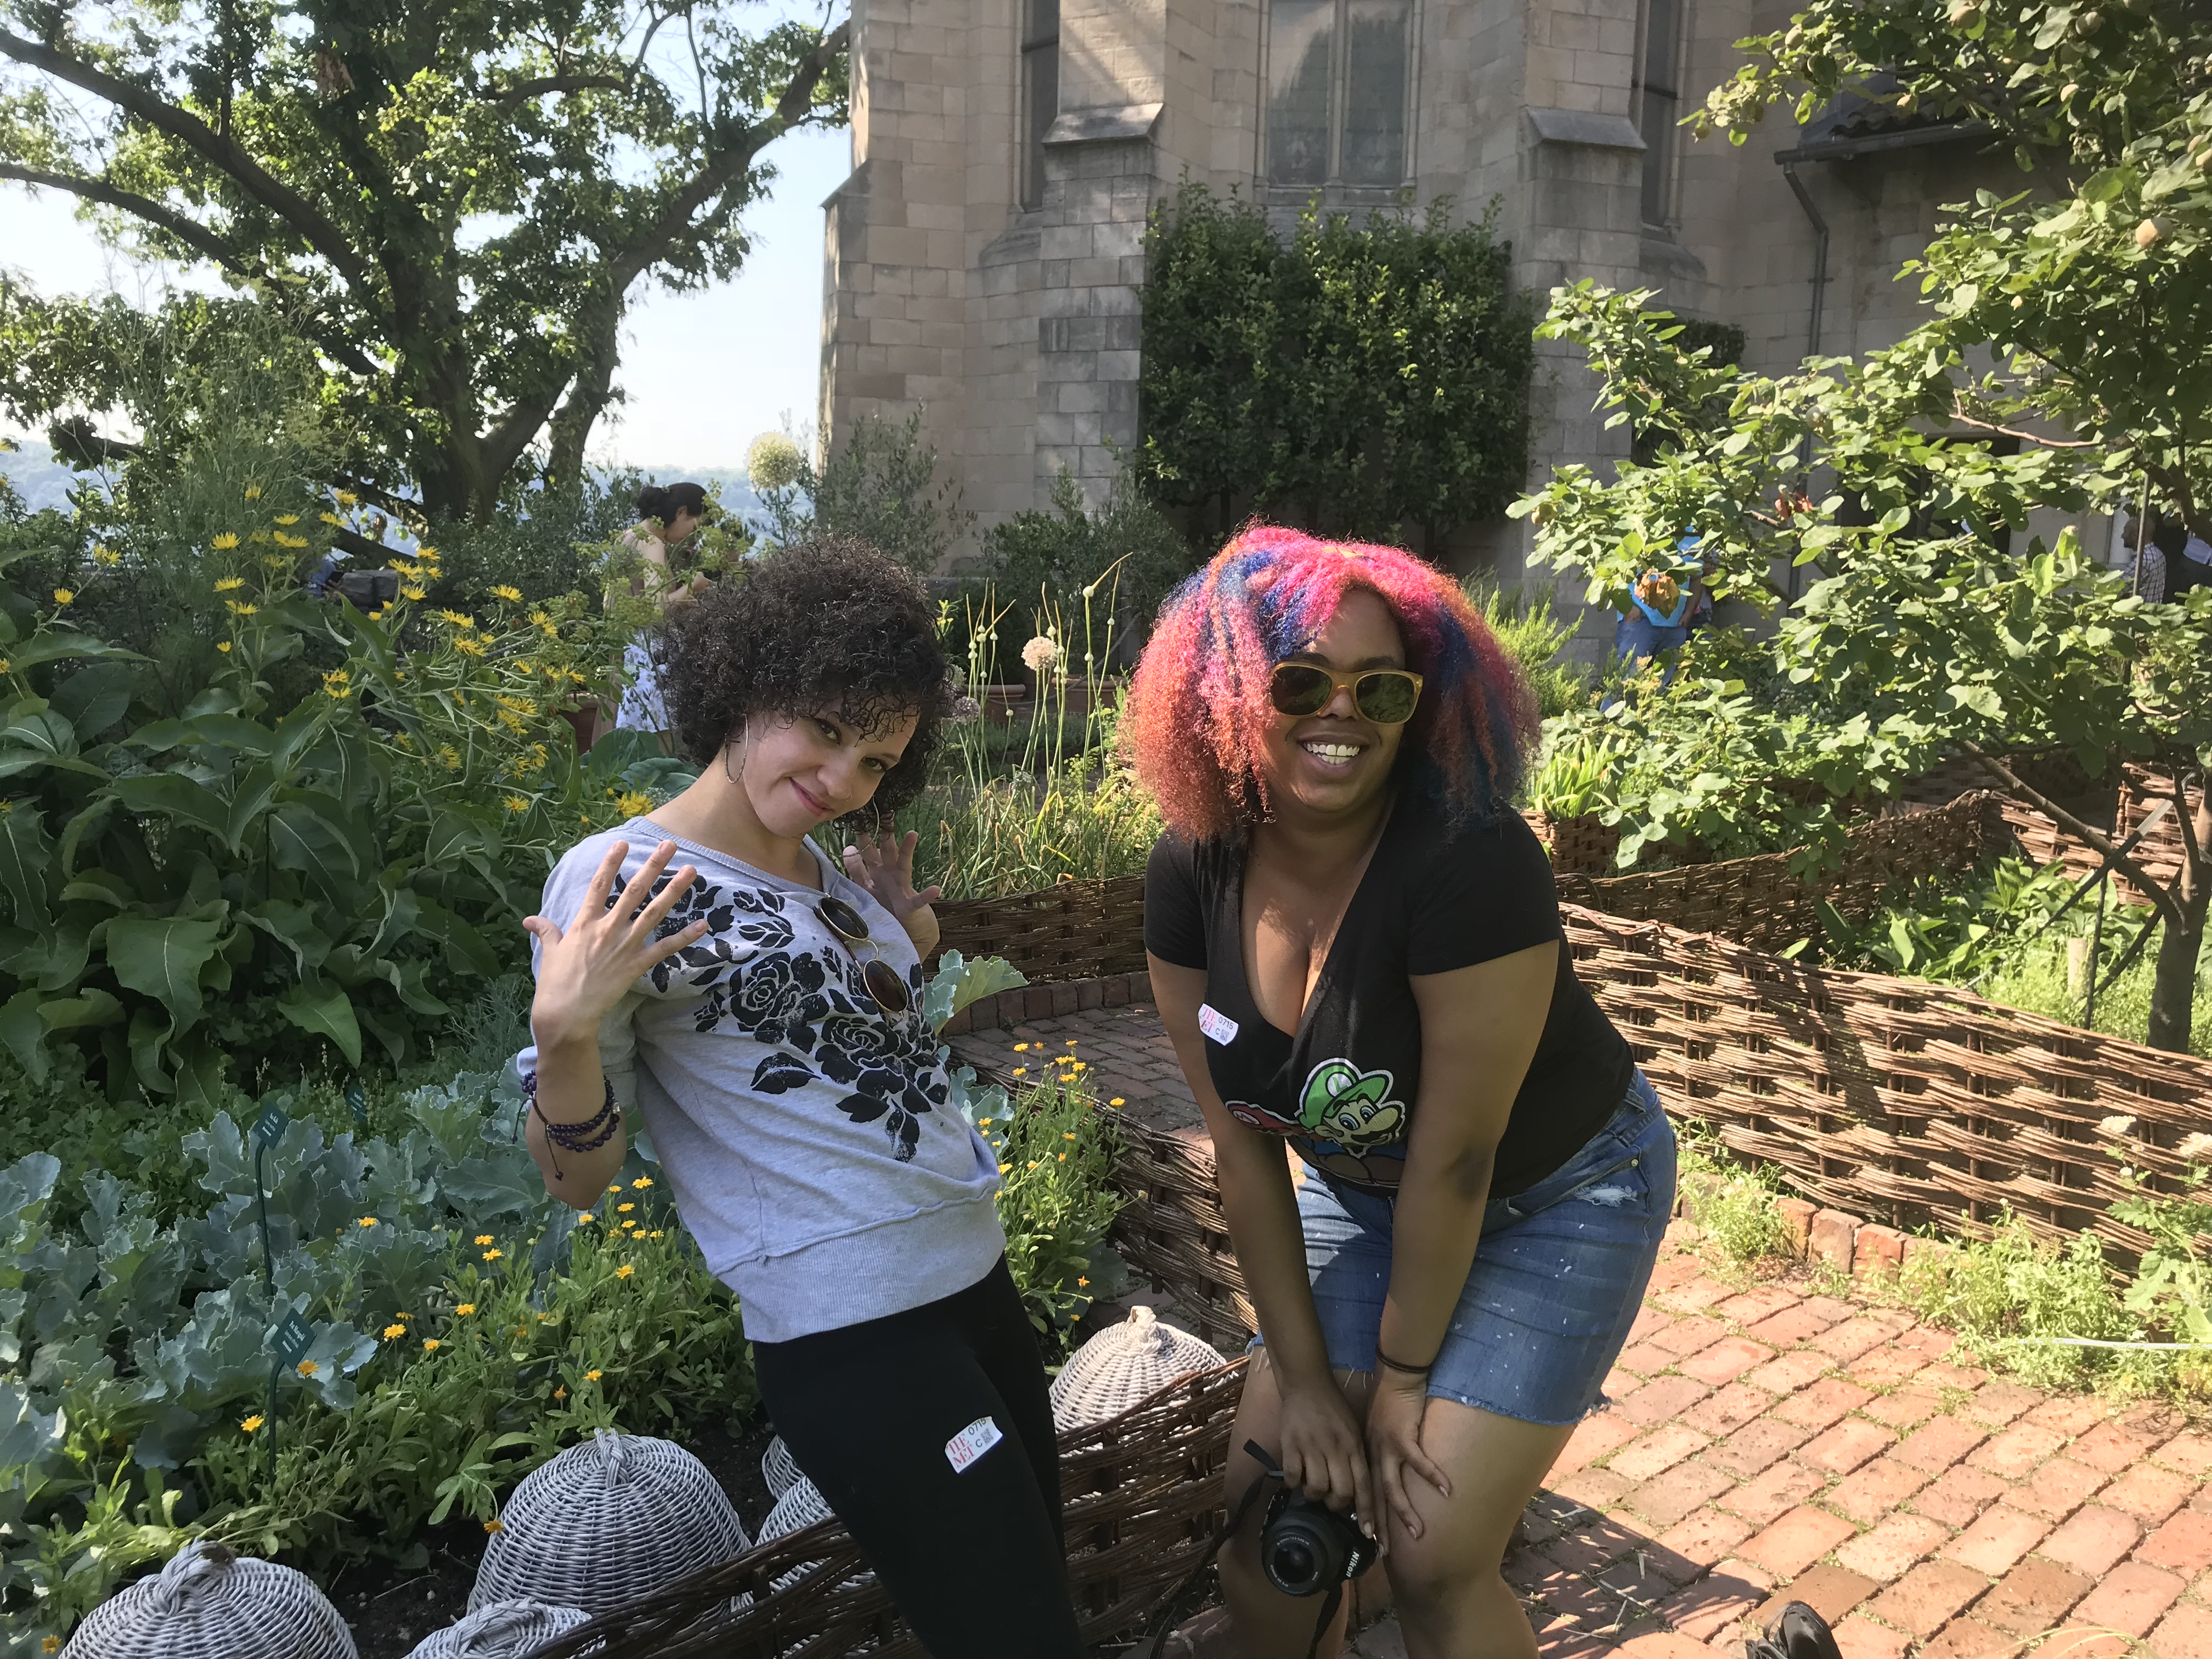 Hillary and Rebeca, Photographer and Model, The Cloisters Garden